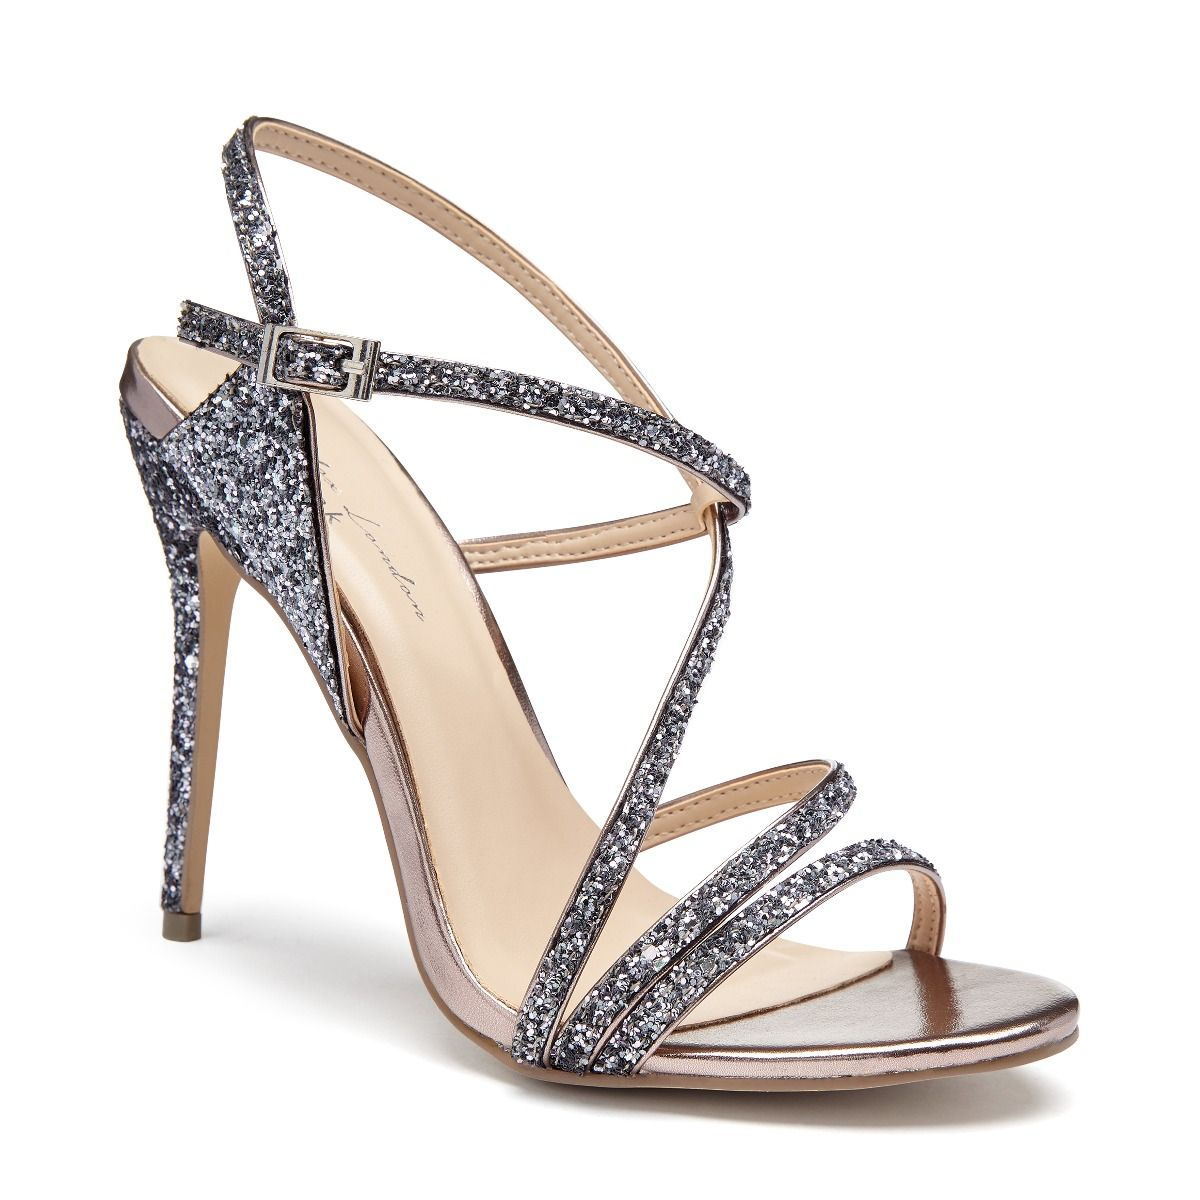 0b3af92c00ad Saffie pewter glitter high heel strappy sandal embellished silver sandals  occasion shoes paradox london jpg 1200x1200